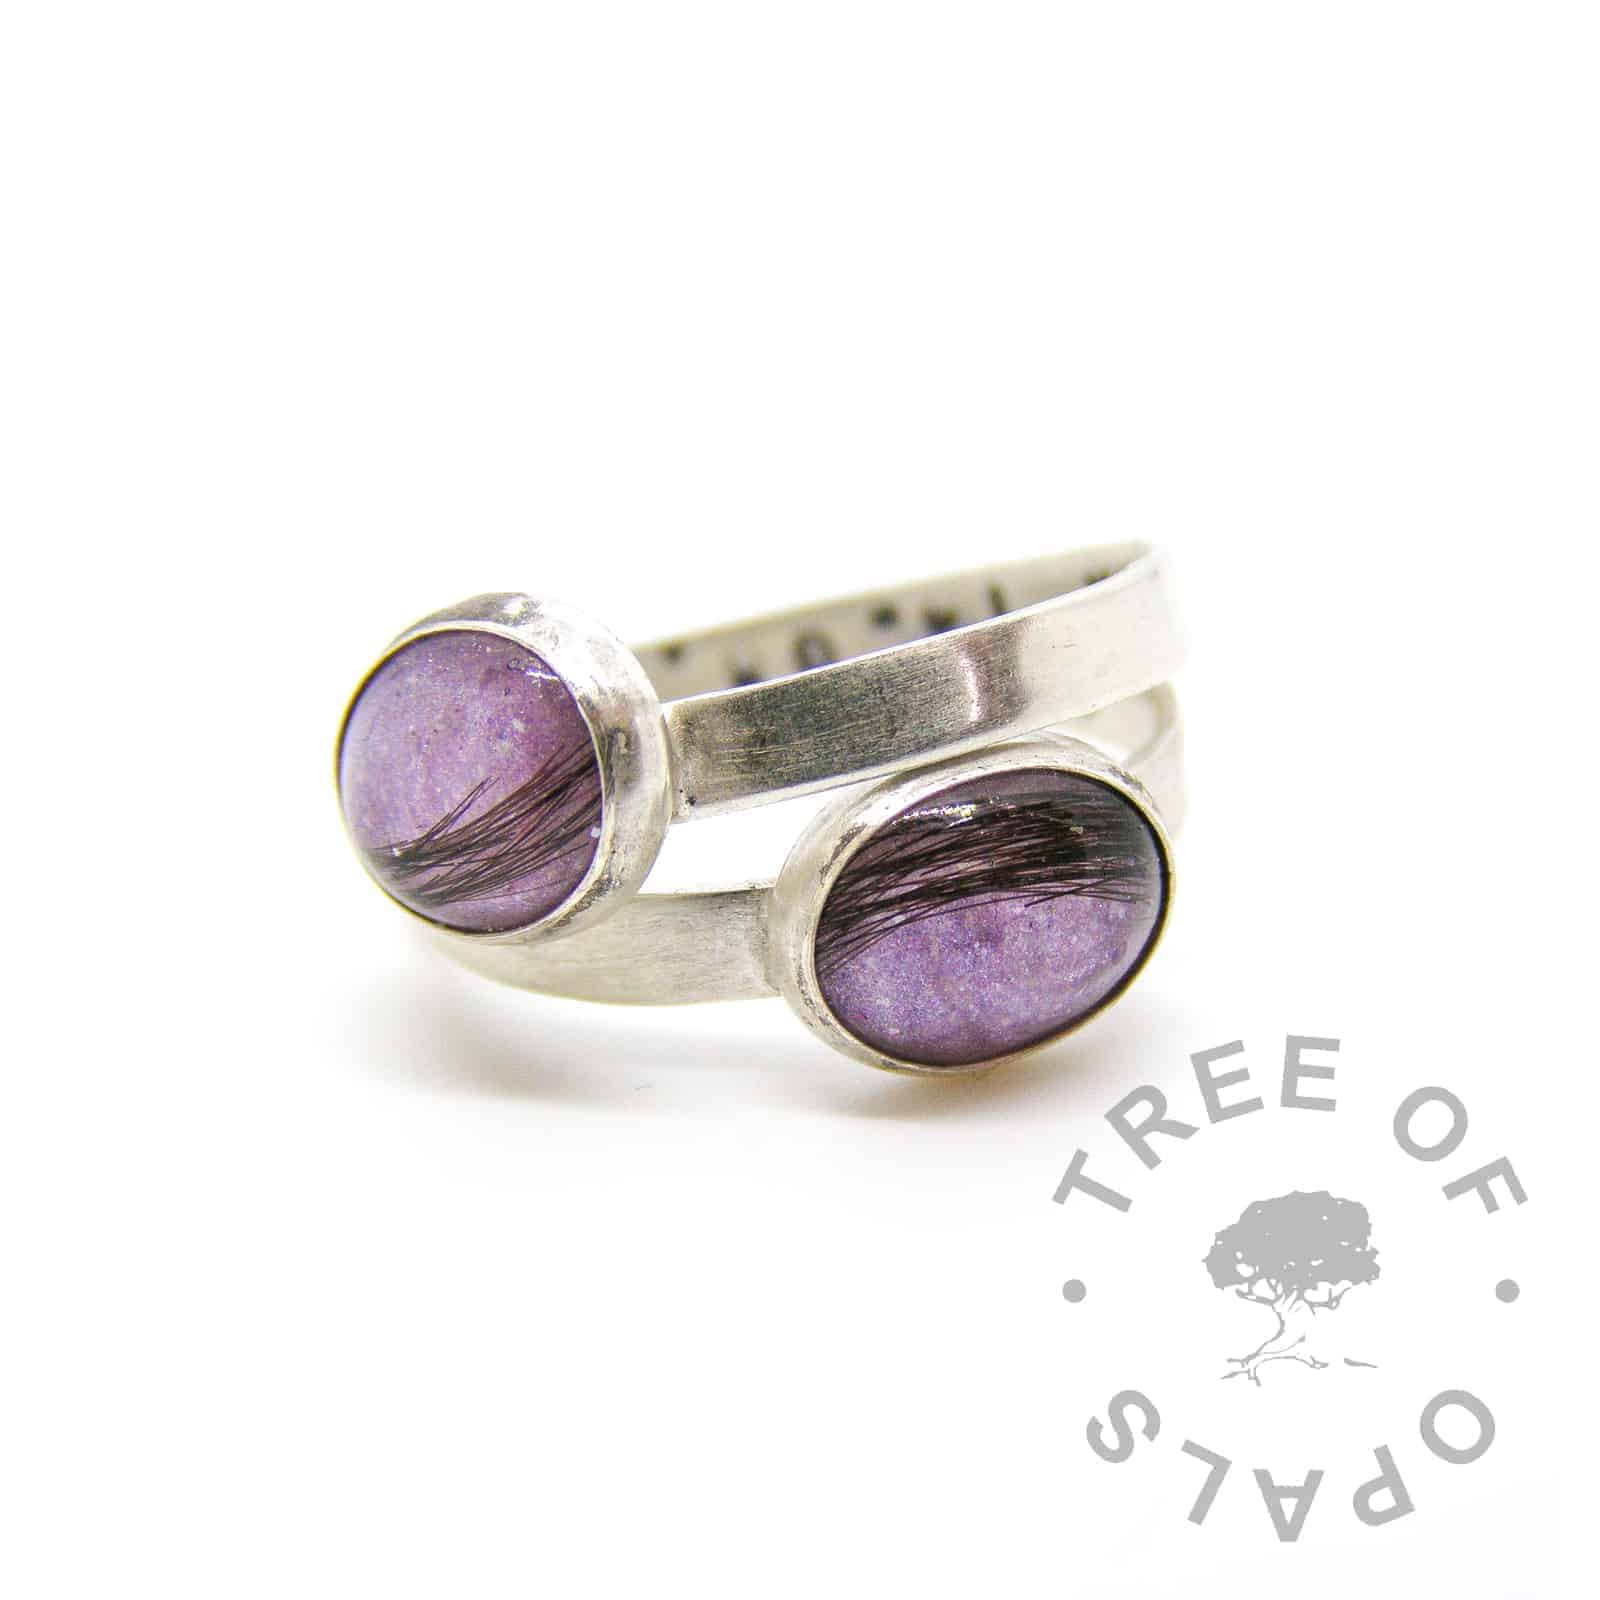 lock of hair rings with orchid purple sparkle background galaxy effect, brushed solid sterling silver band and stamping